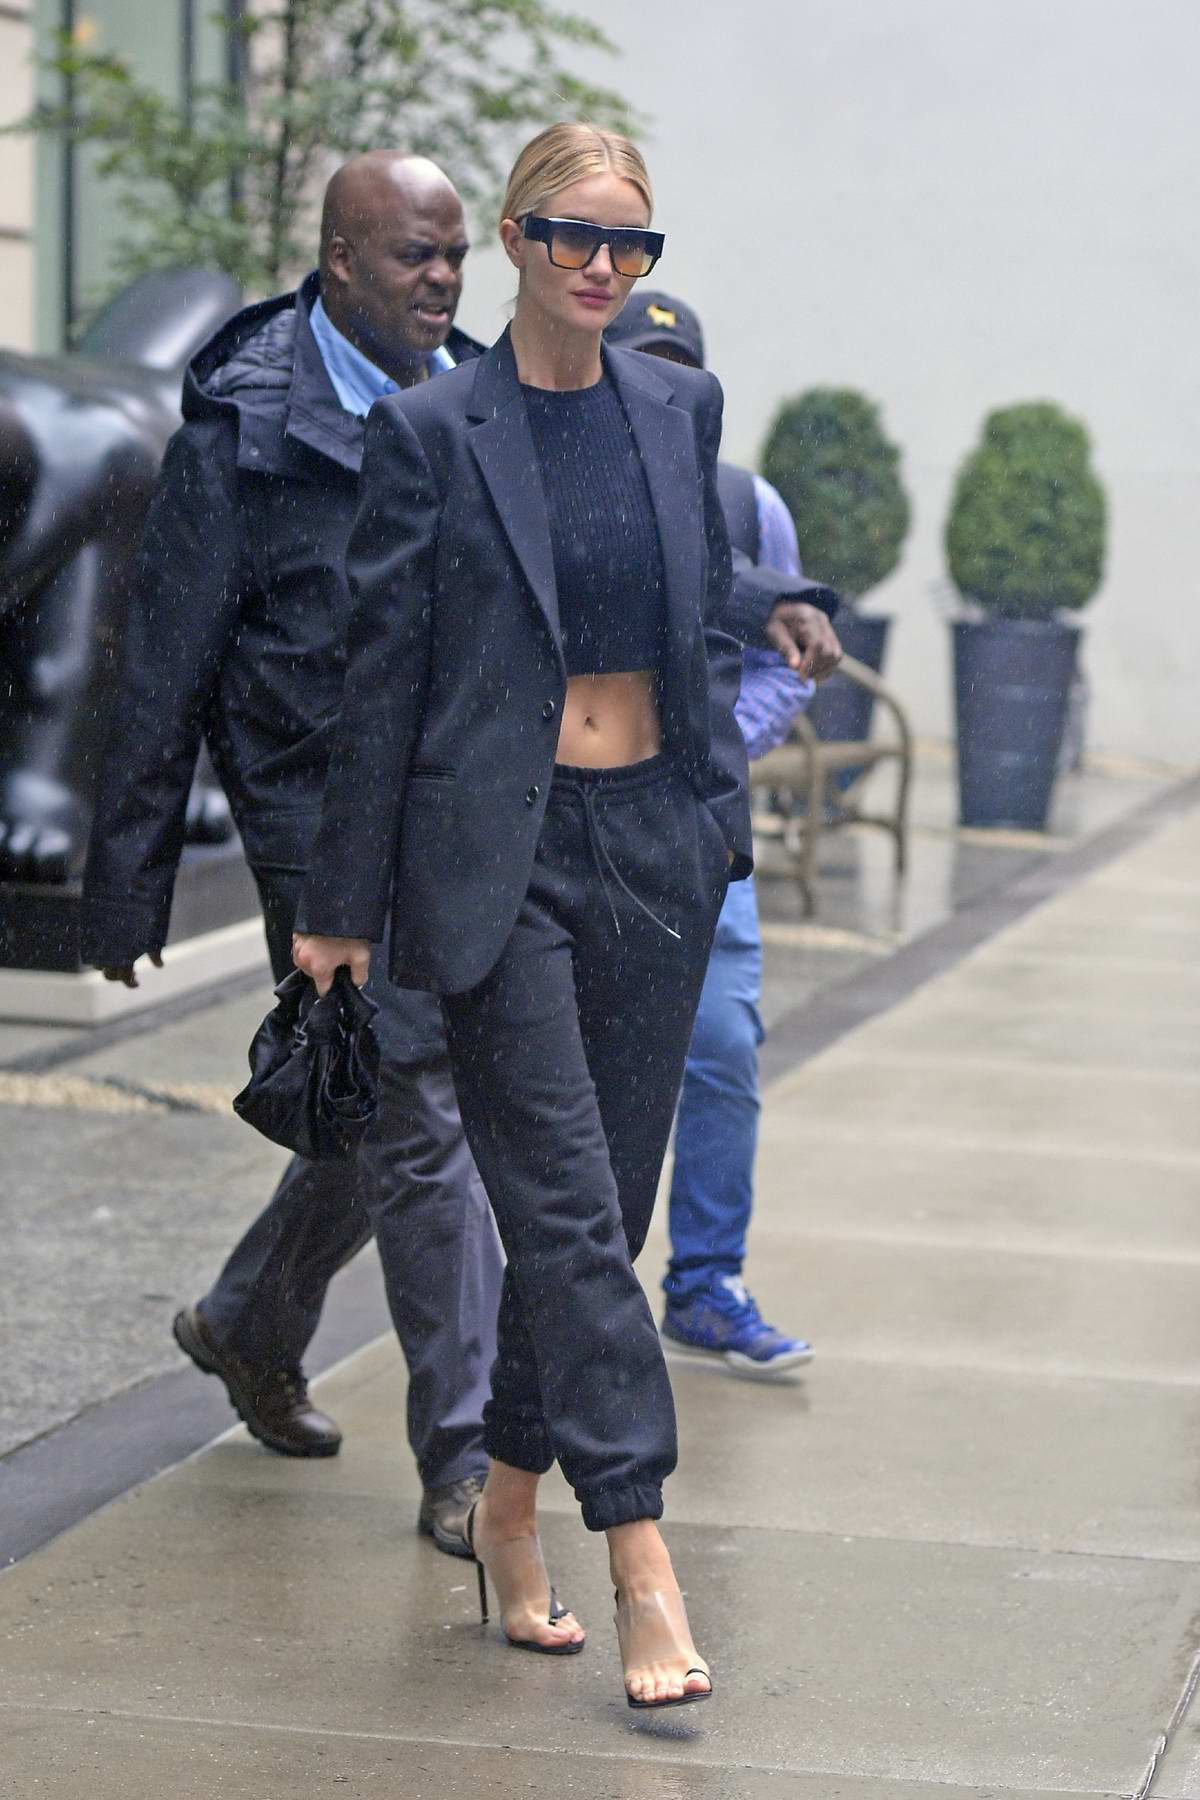 Rosie Huntington-Whiteley seen wearing black pantsuit over black crop top while heading out in rain in New York City